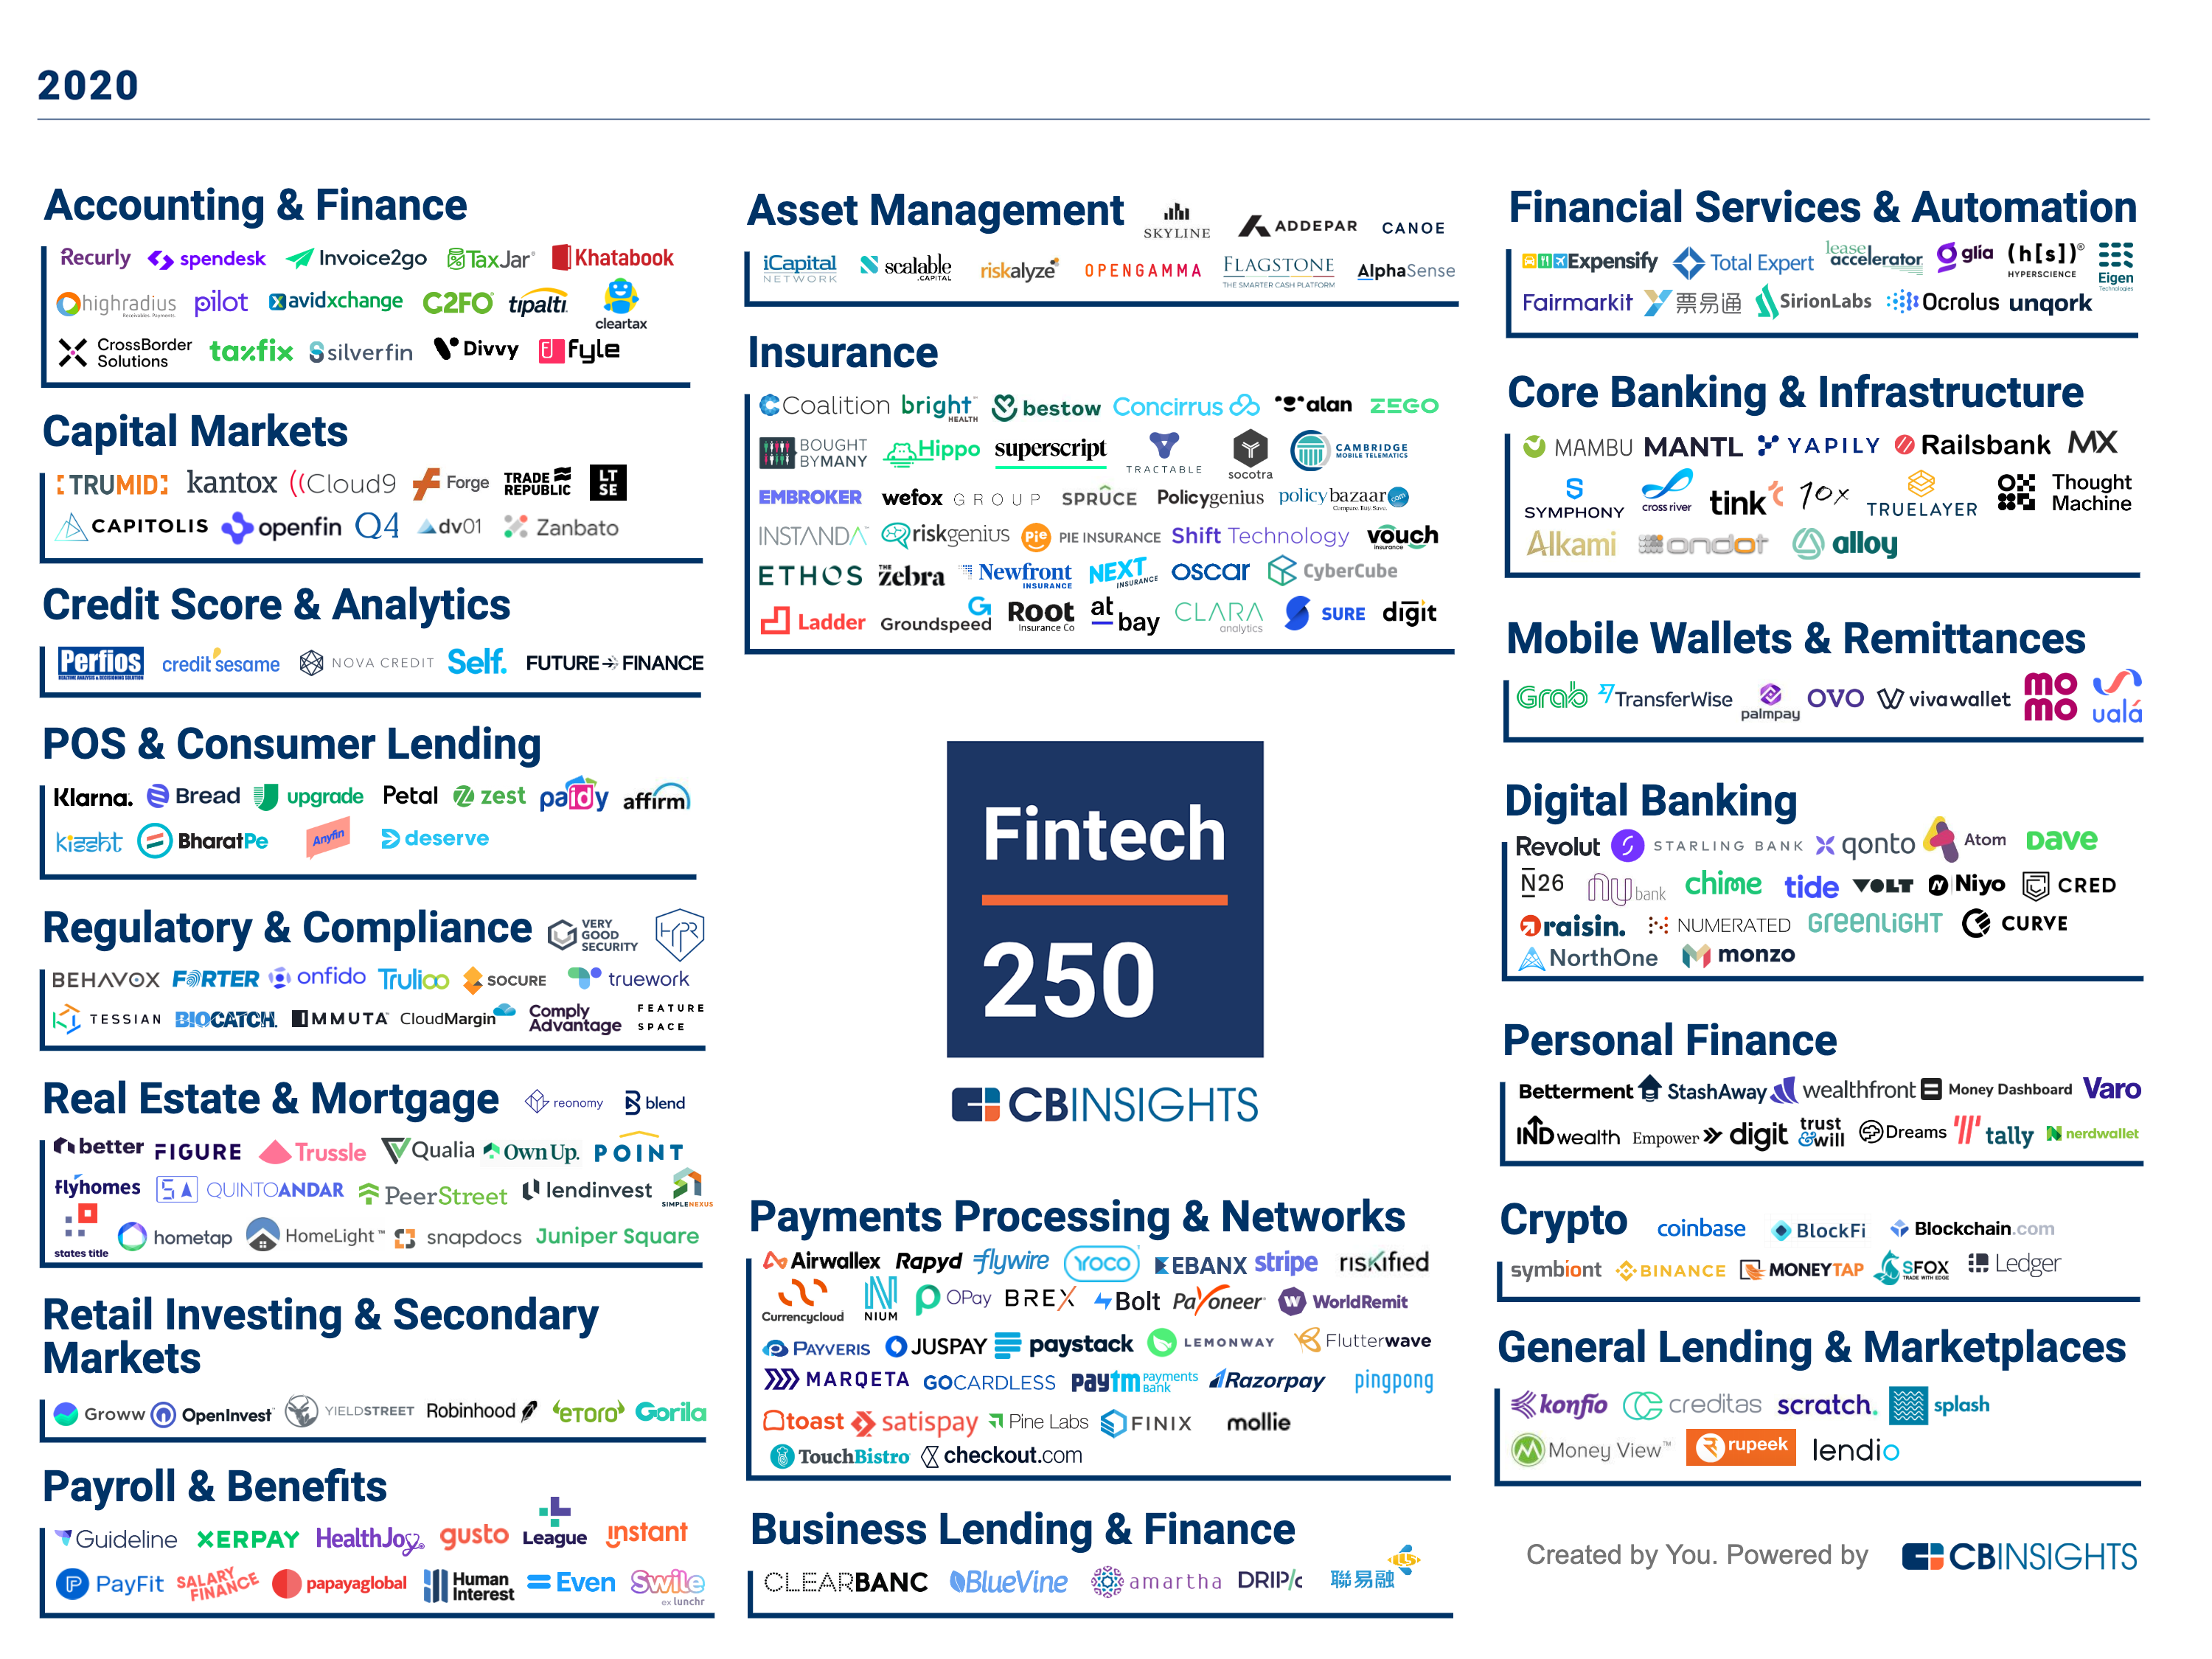 The financial services industry continues to attract tech companies that transform how people and businesses spend, save, borrow, invest, and more. From capital markets to insurance and digital banking to wealth management, the Fintech 250 are among the most promising of these companies globally.